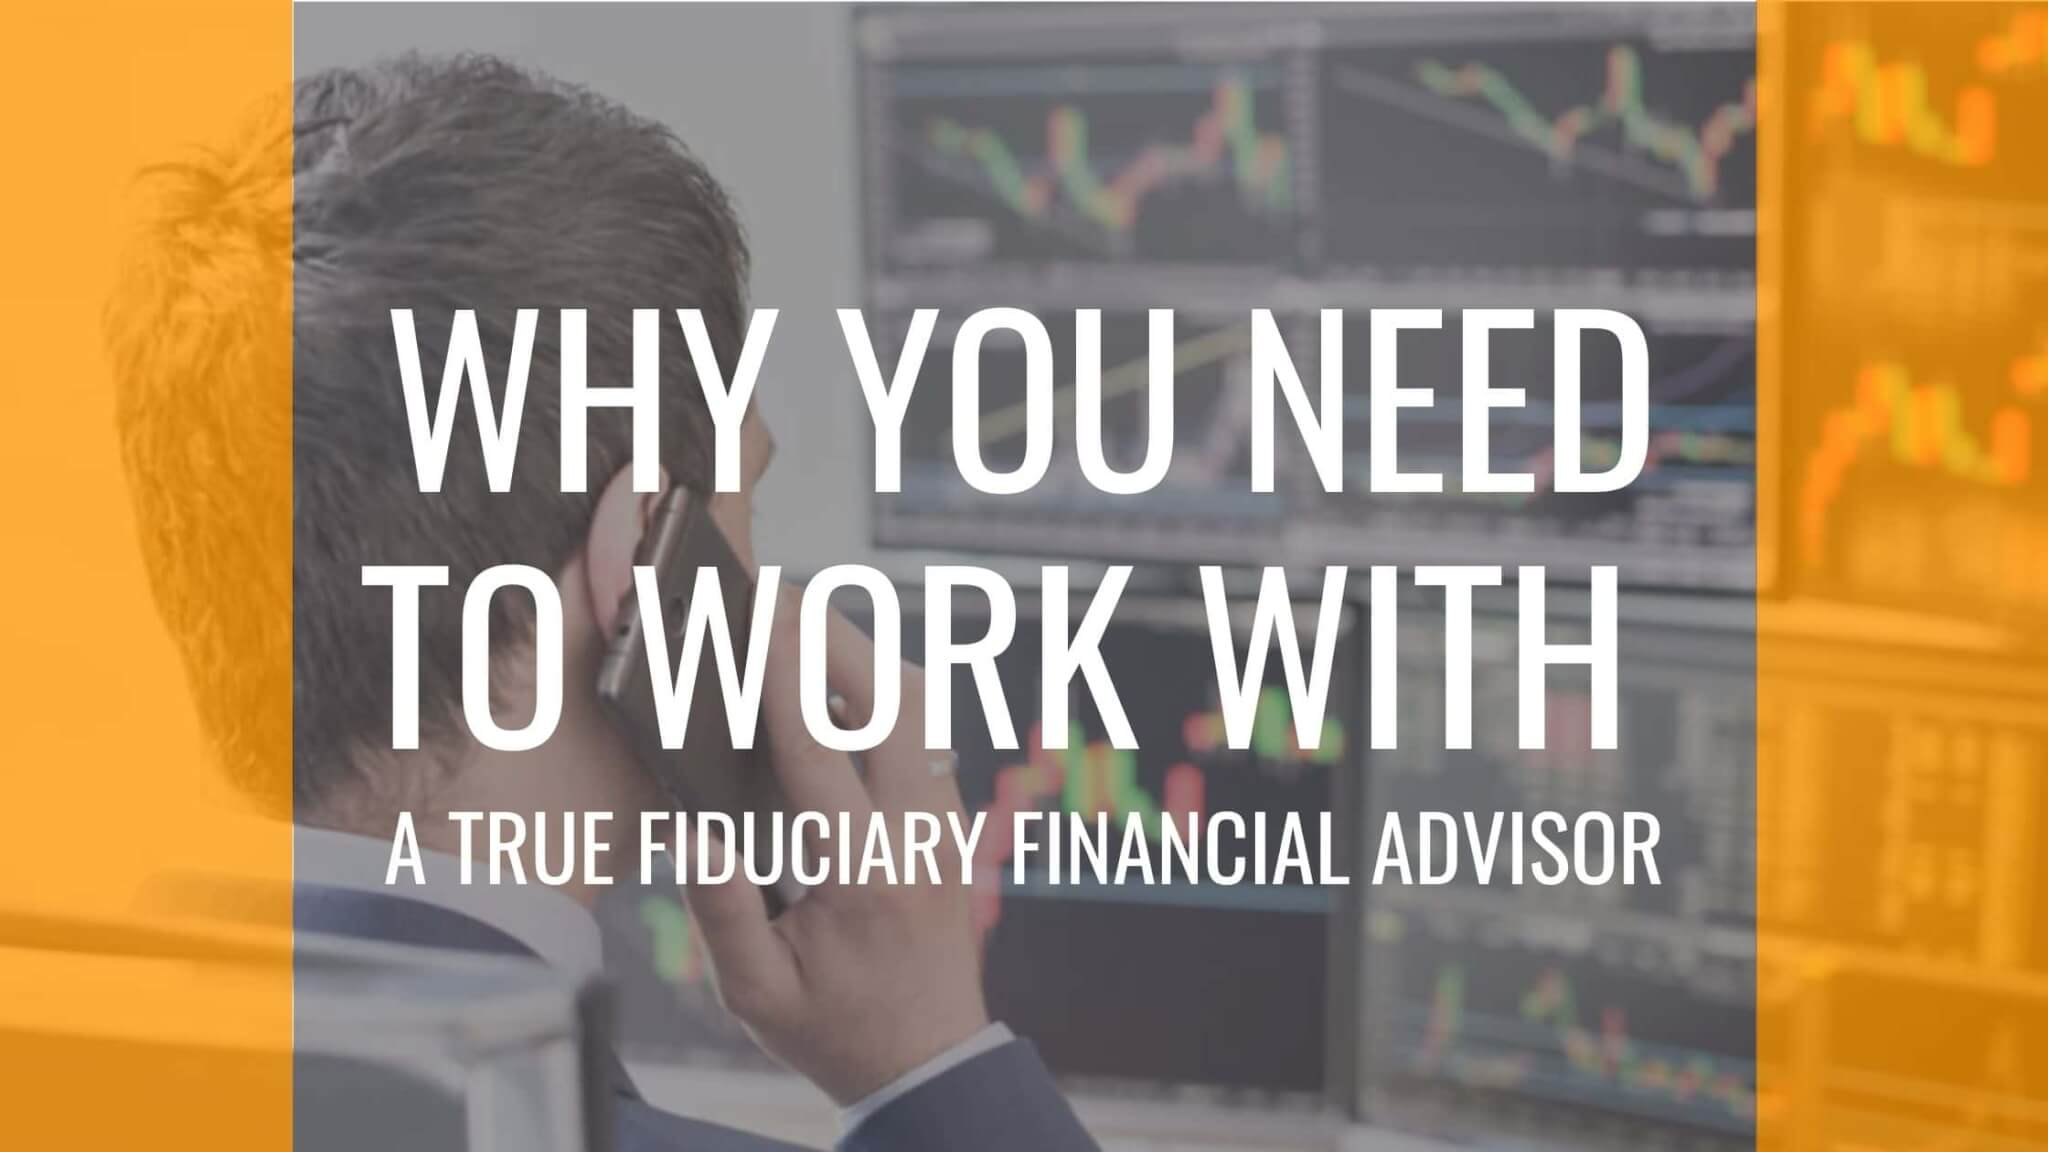 Why Work With A True Fiduciary Advisor